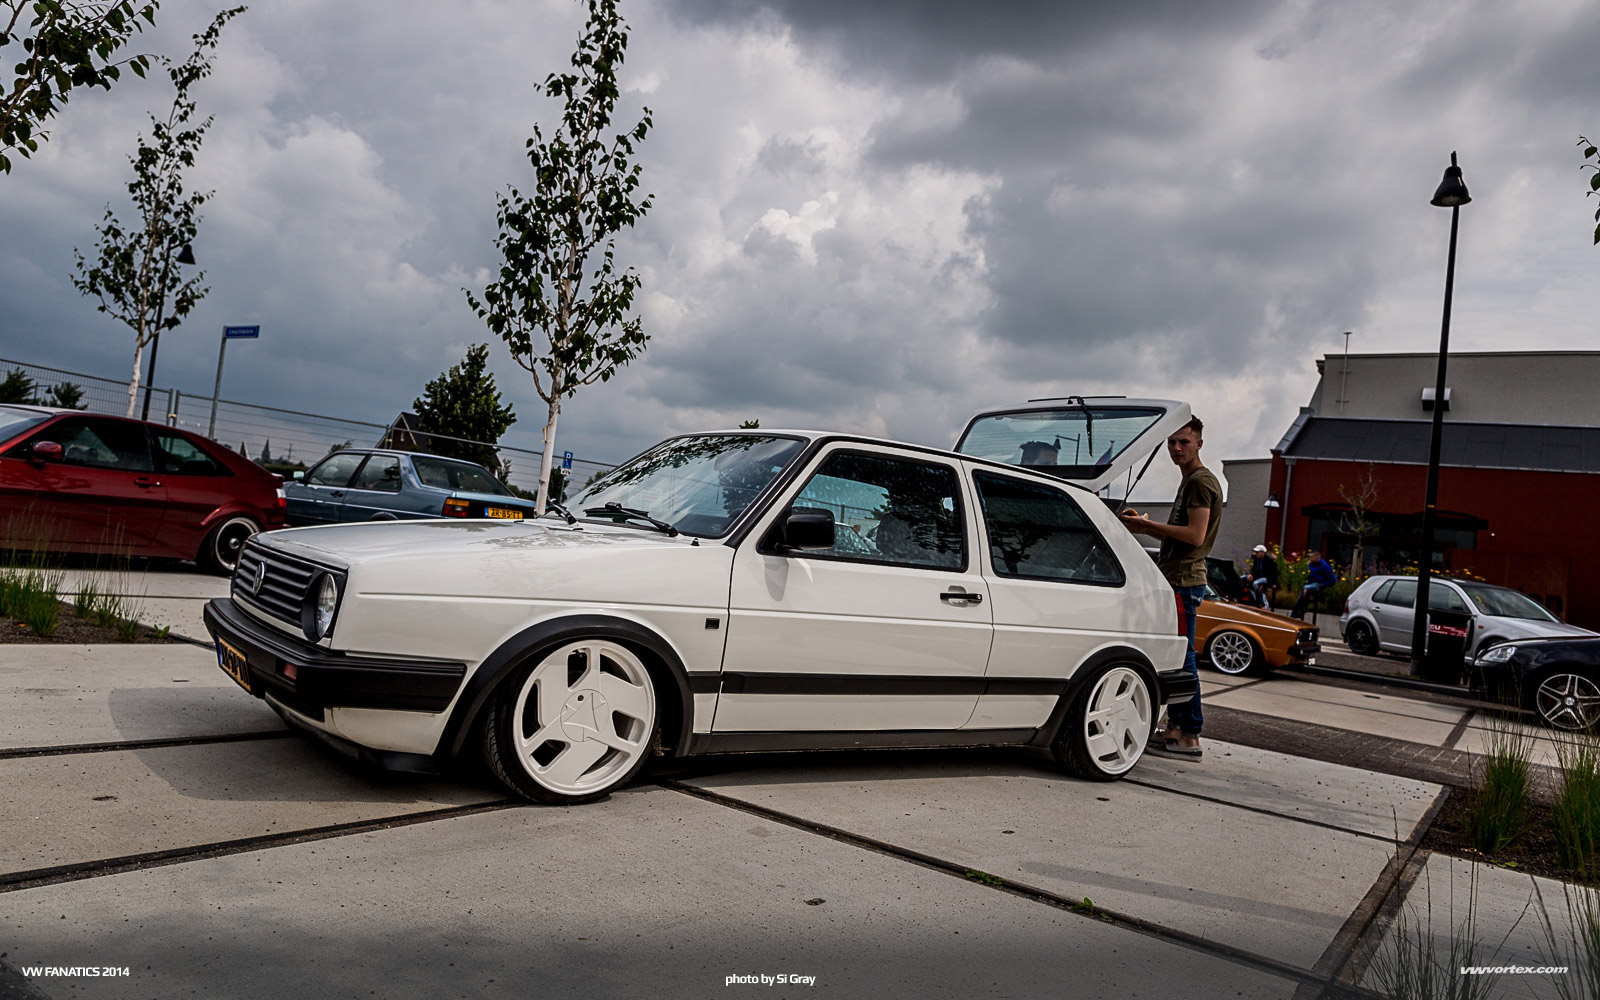 VWFanatics-2014-Si-Gray-438